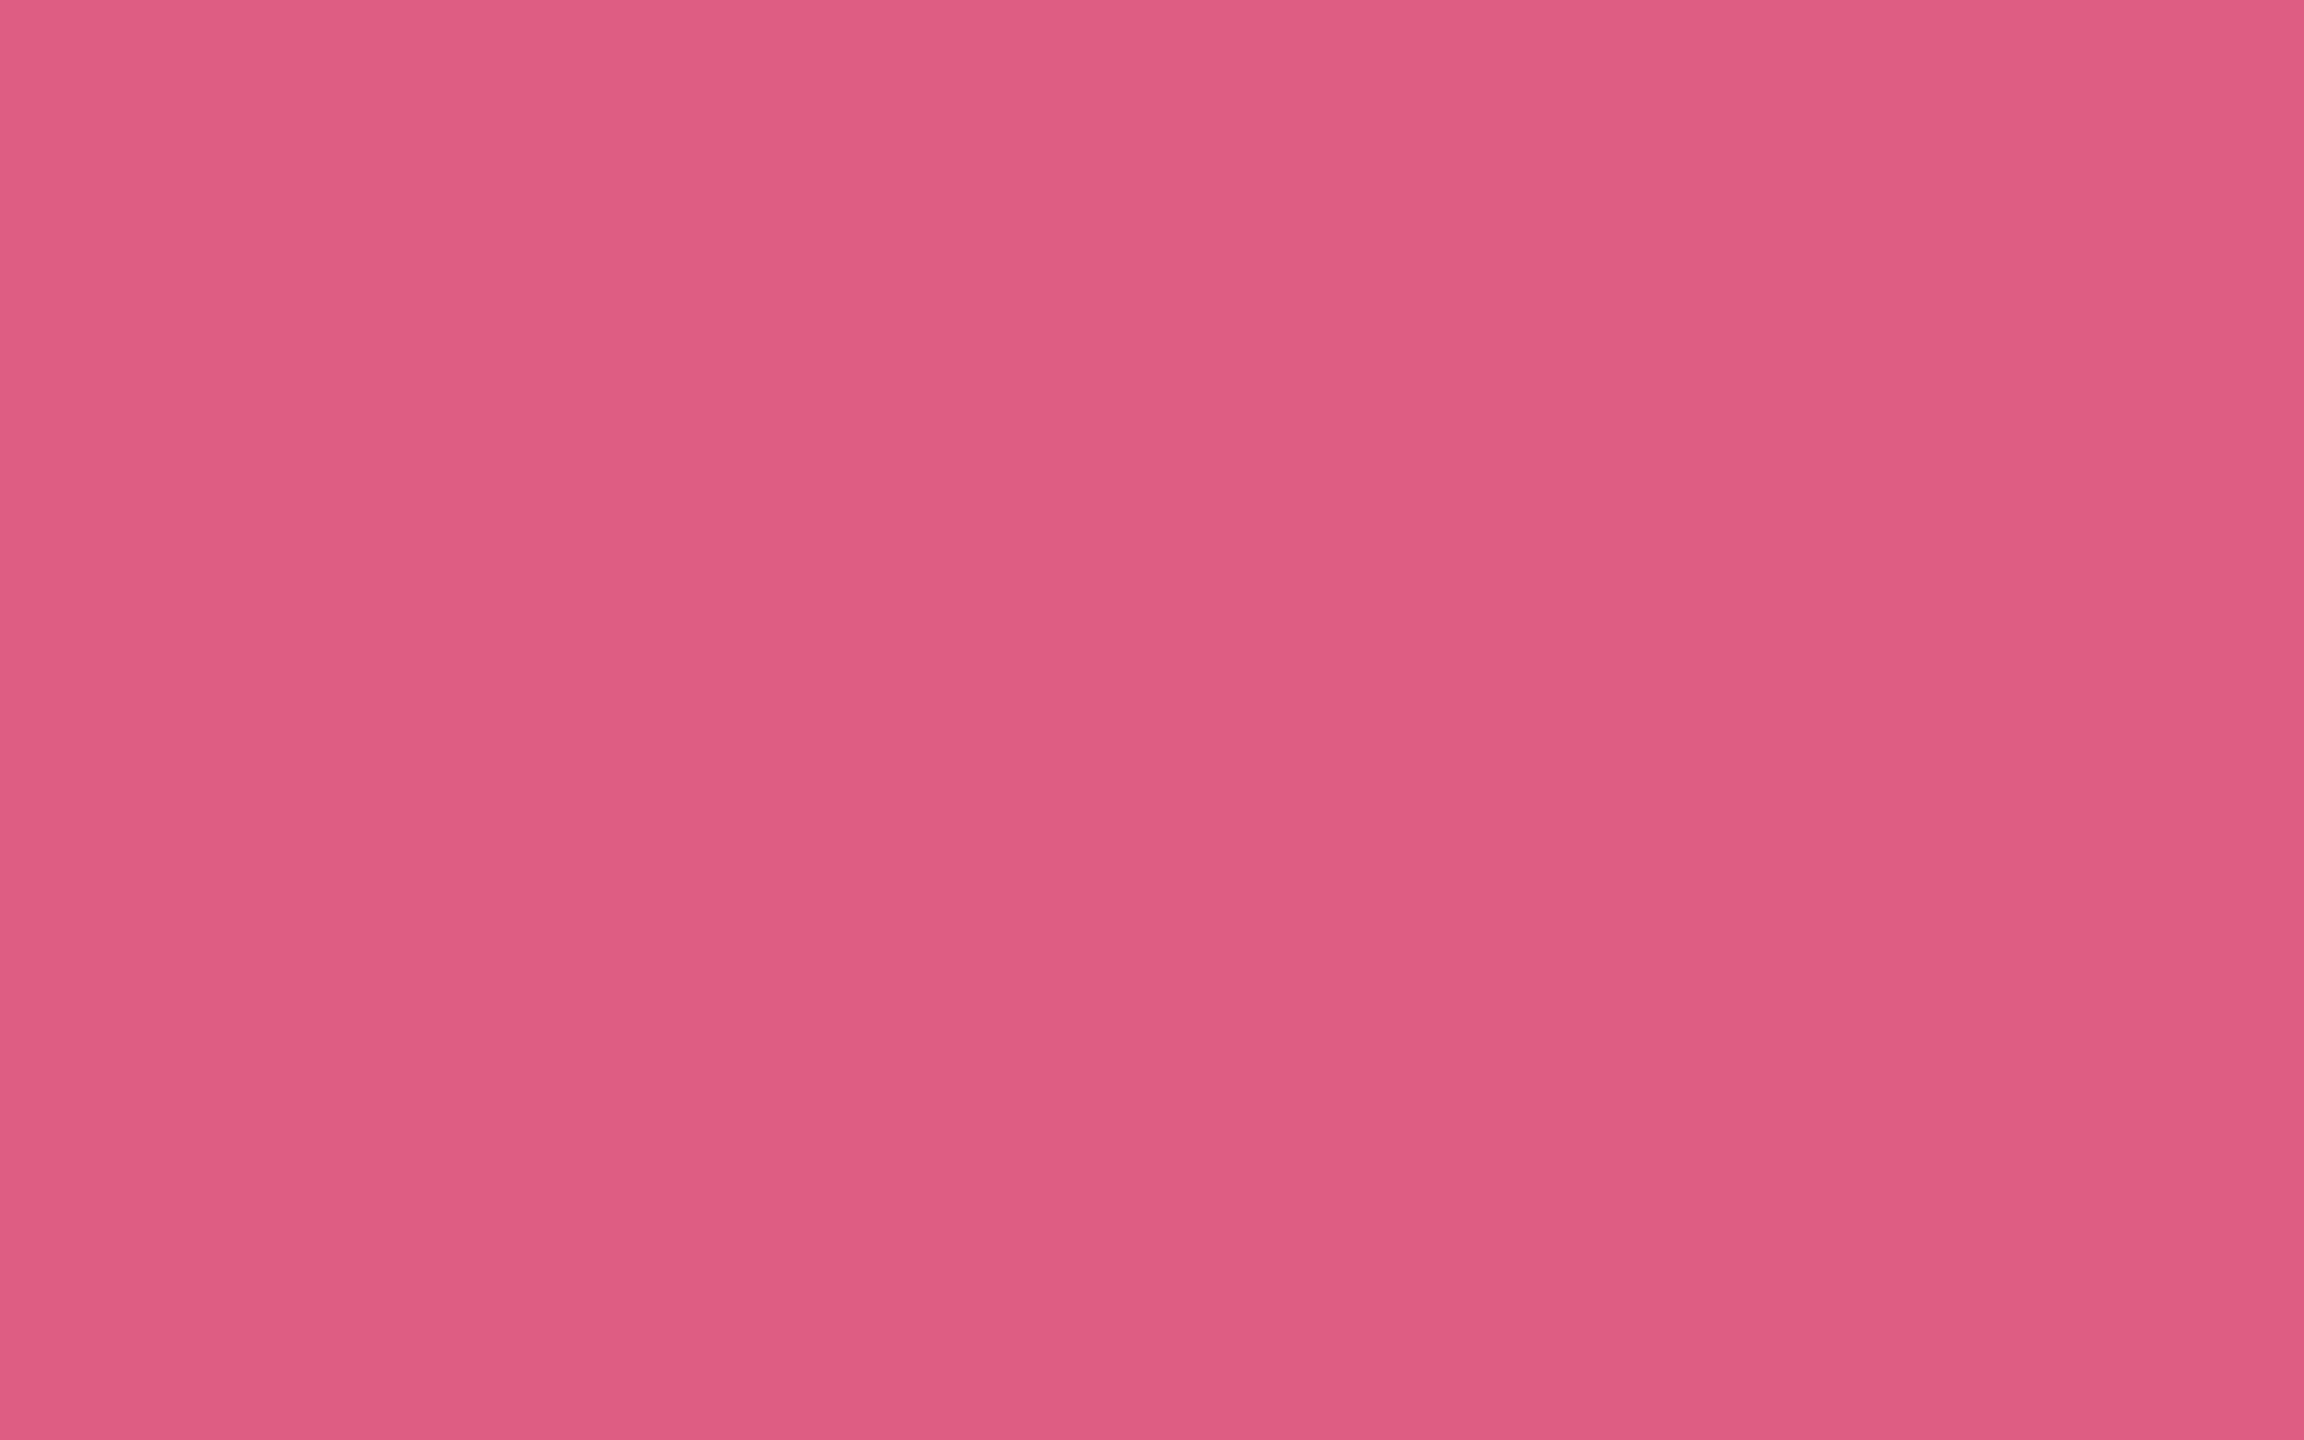 2304x1440 Blush Solid Color Background